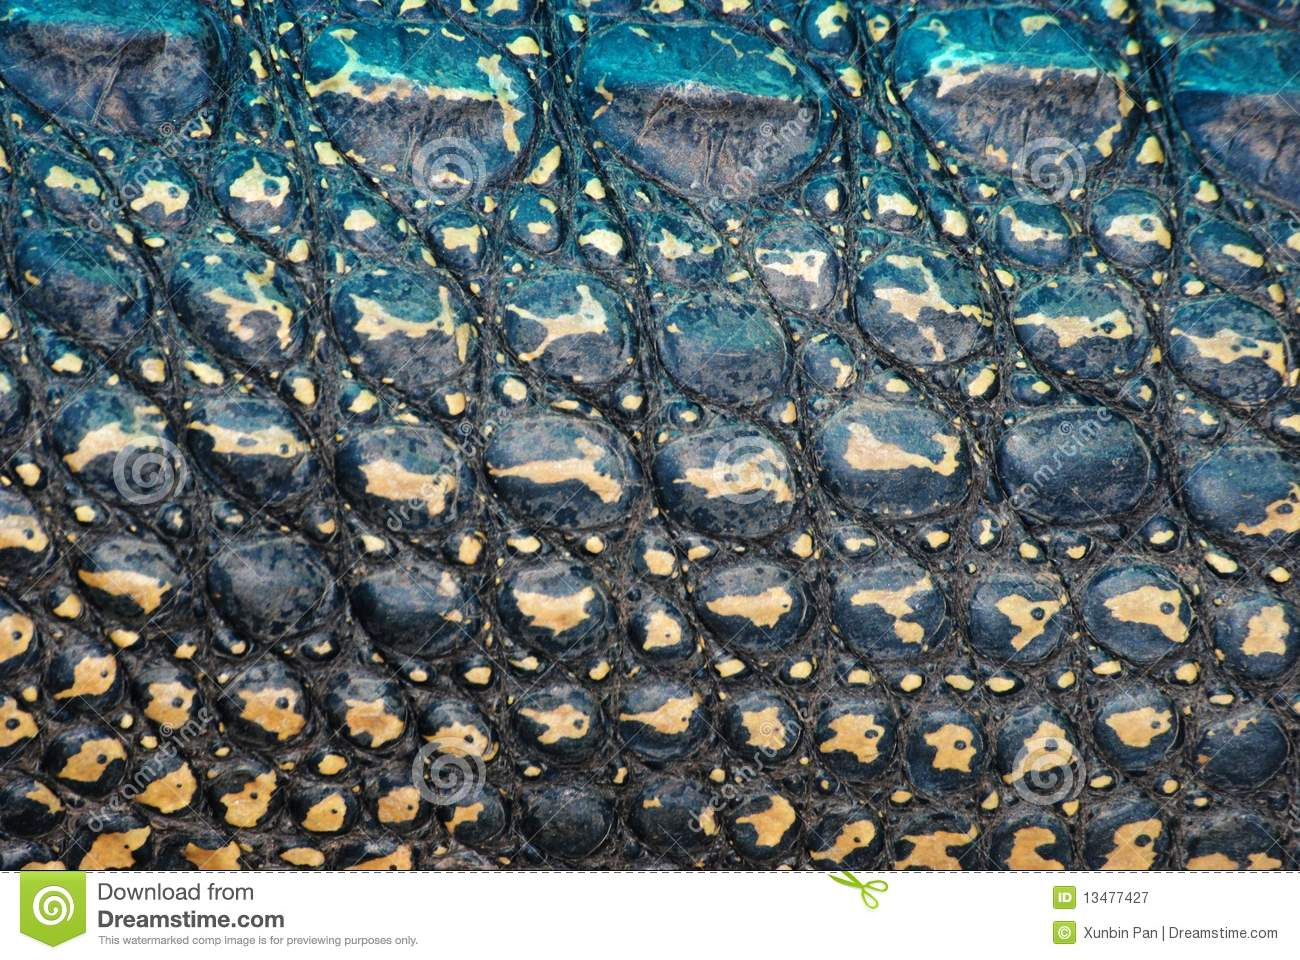 Crocodile Skin Texture Royalty Free Stock Photography Image 13477427